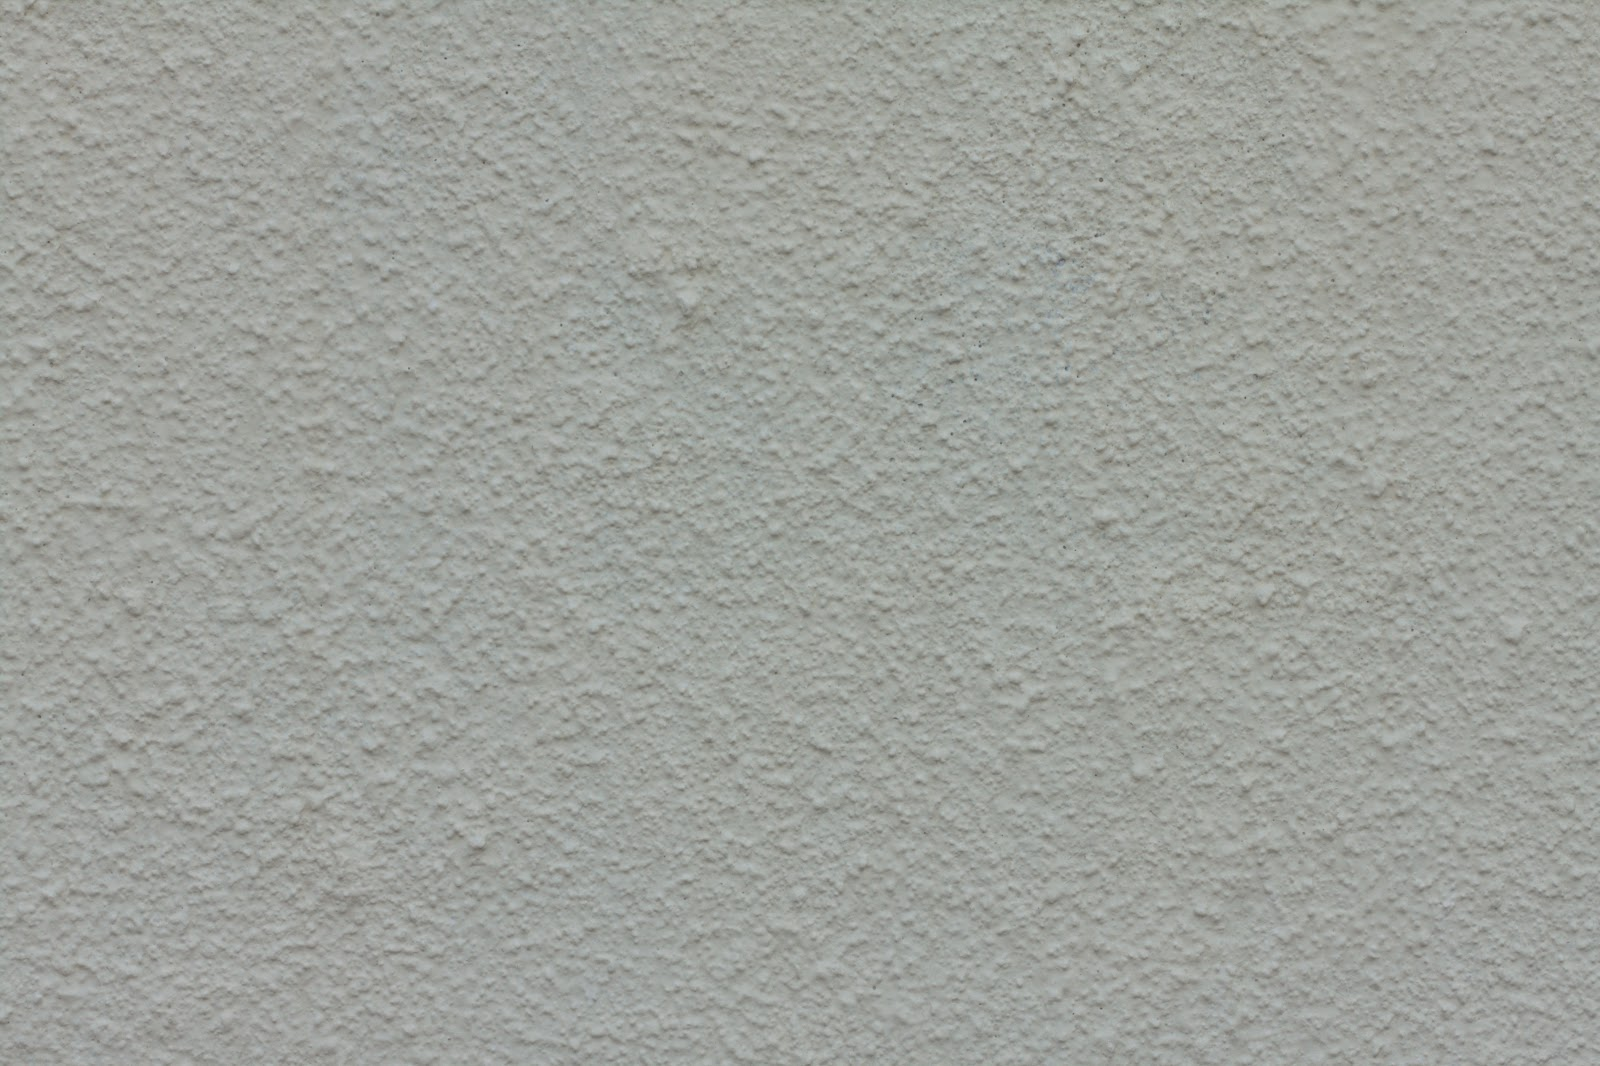 White stucco plaster wall paper texture ver4 4770x3178